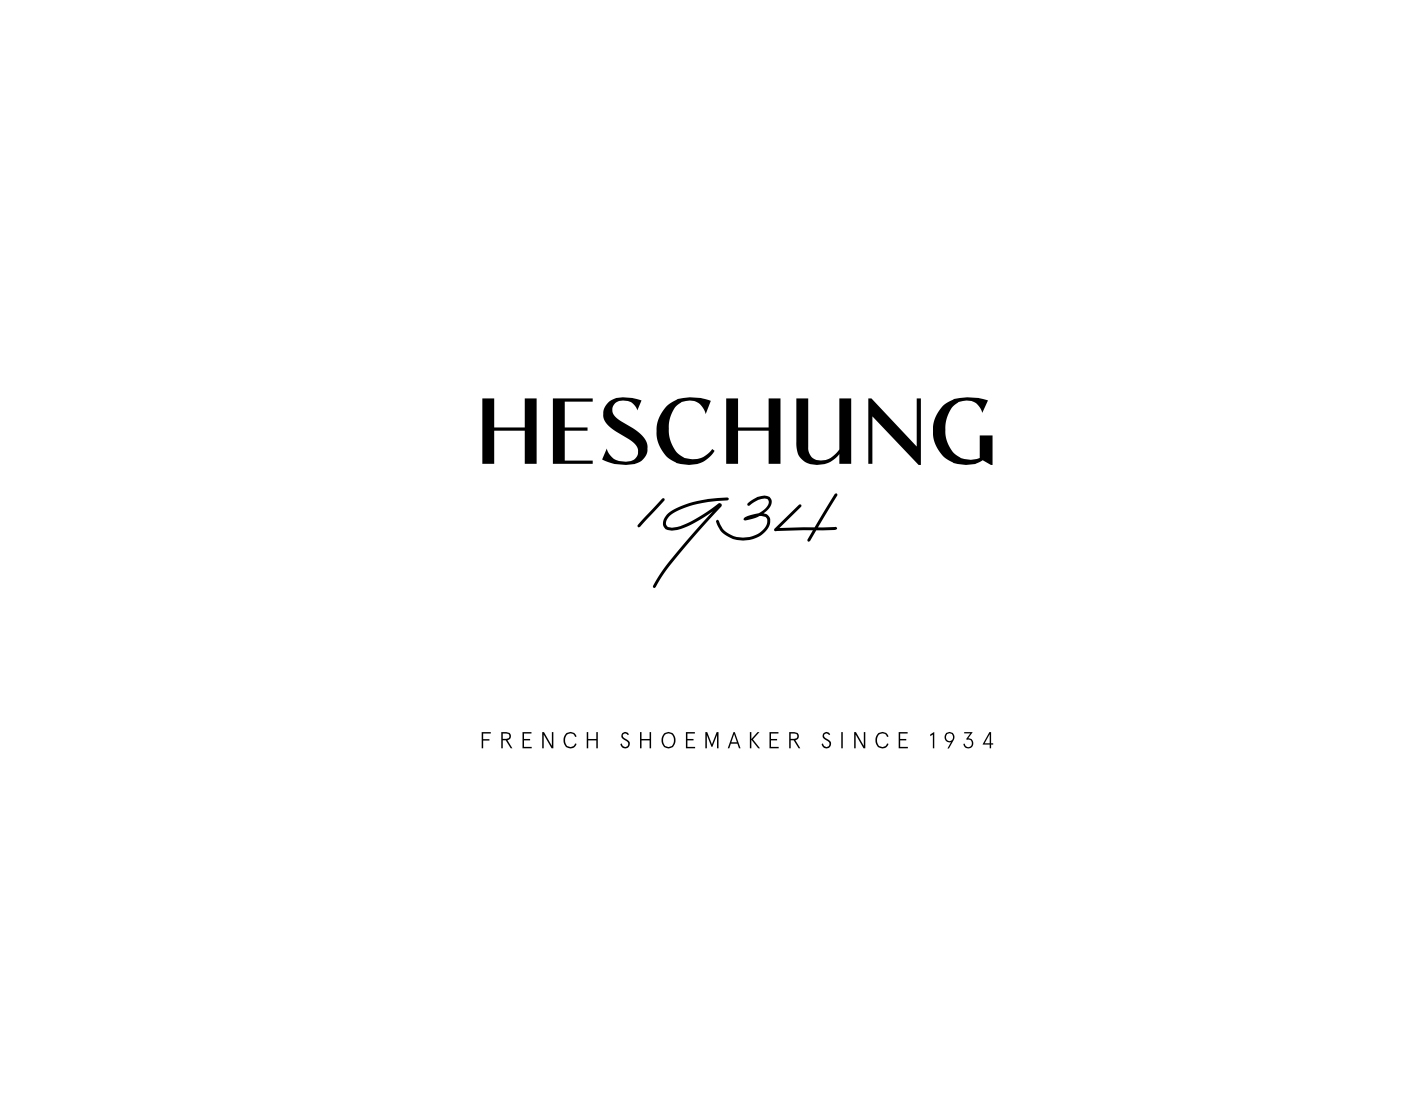 Heschung, the shoes à la française, now in Scandinavia